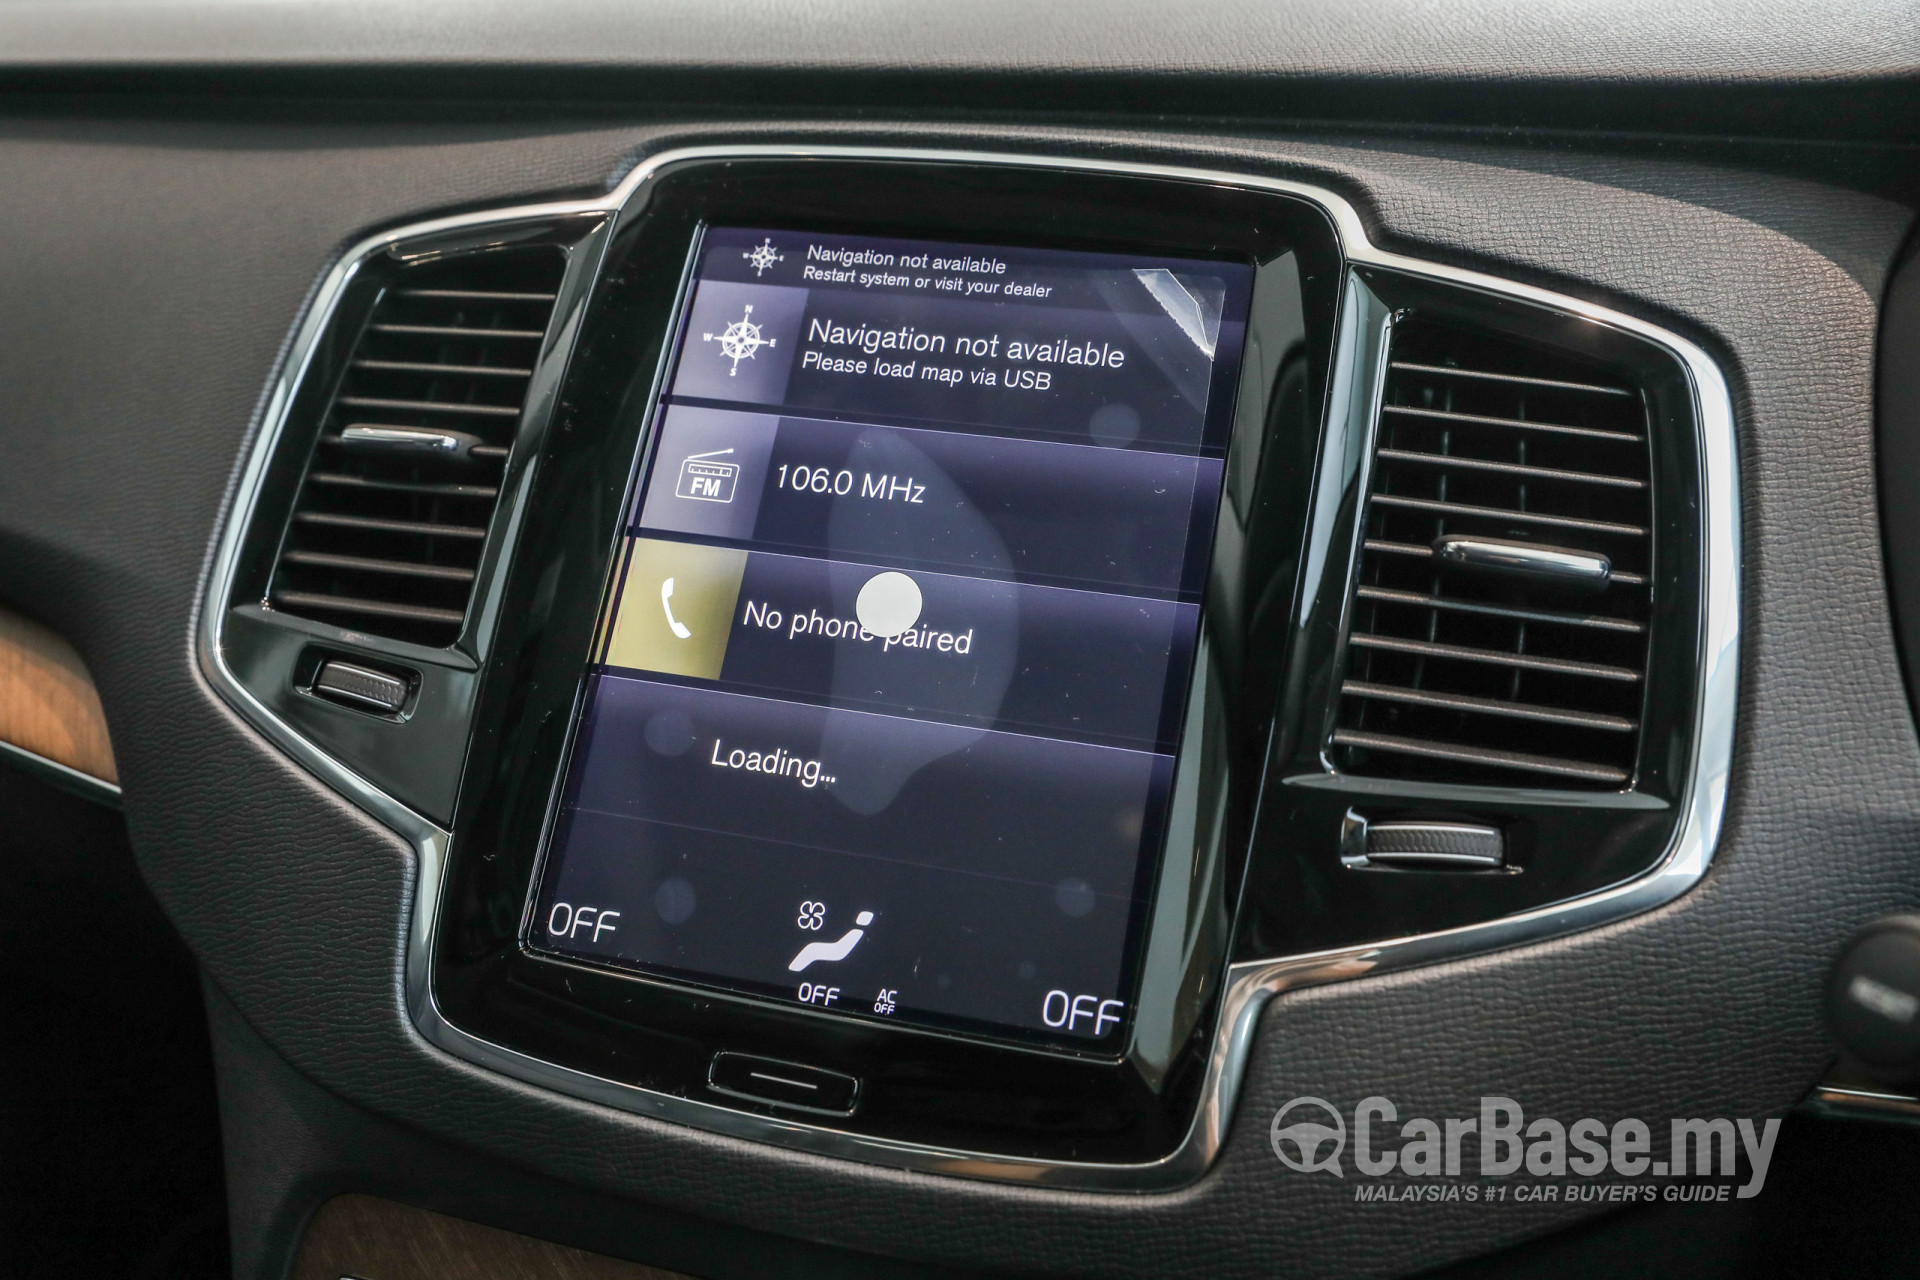 volvo xc90 mk2 2015 interior image 45445 in malaysia reviews rh carbase my Volvo S80 Navigation System 99 Volvo S80 Touch Screen